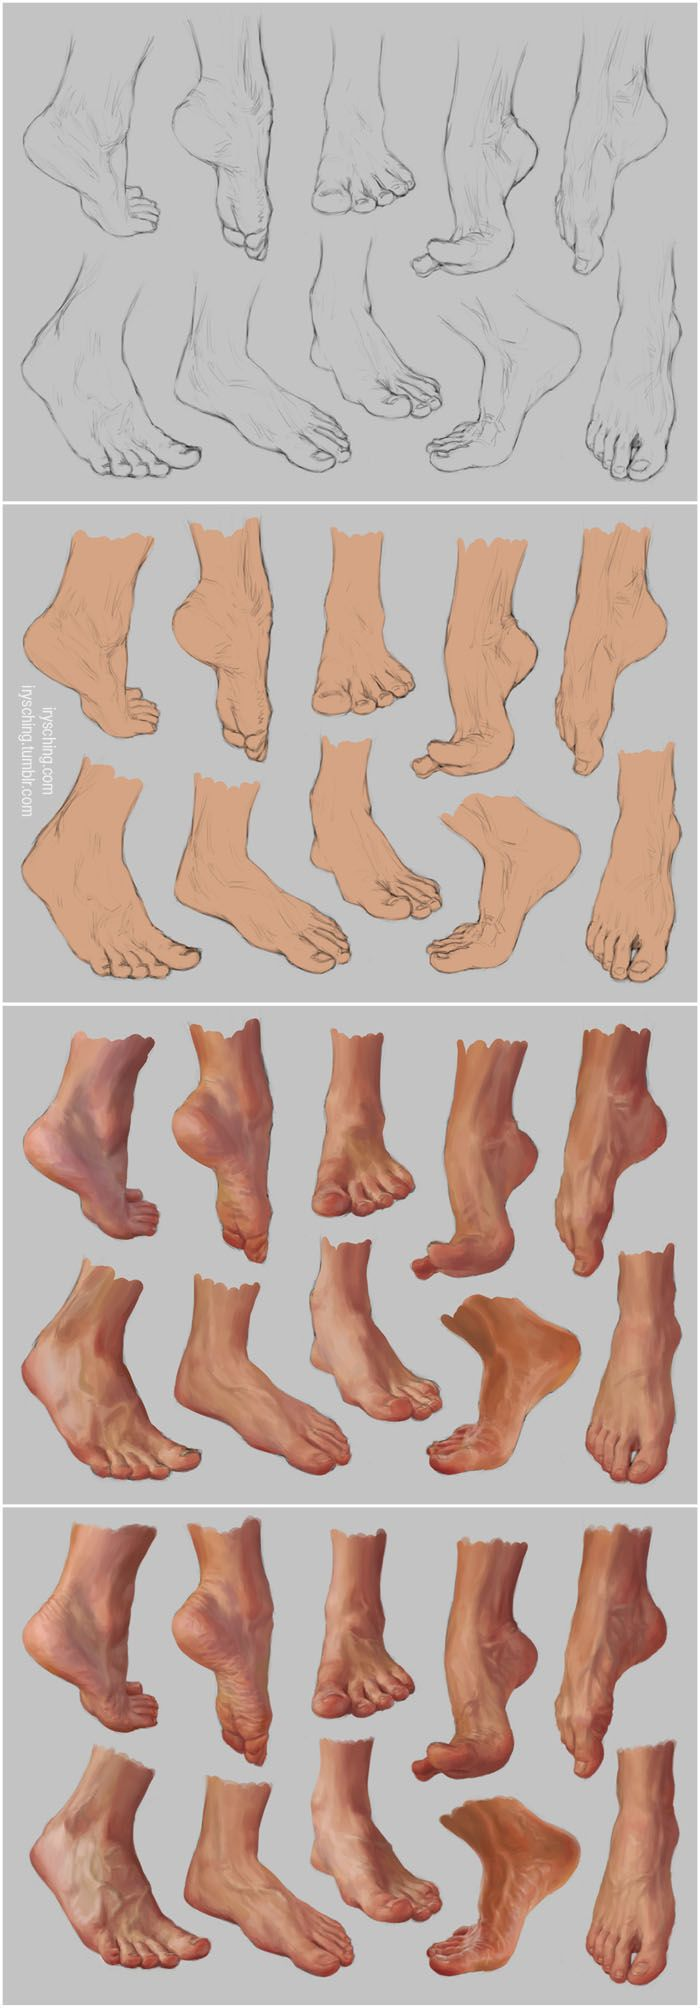 Very complete, step-by-step instructions on how to draw & color feet - including adding shoes